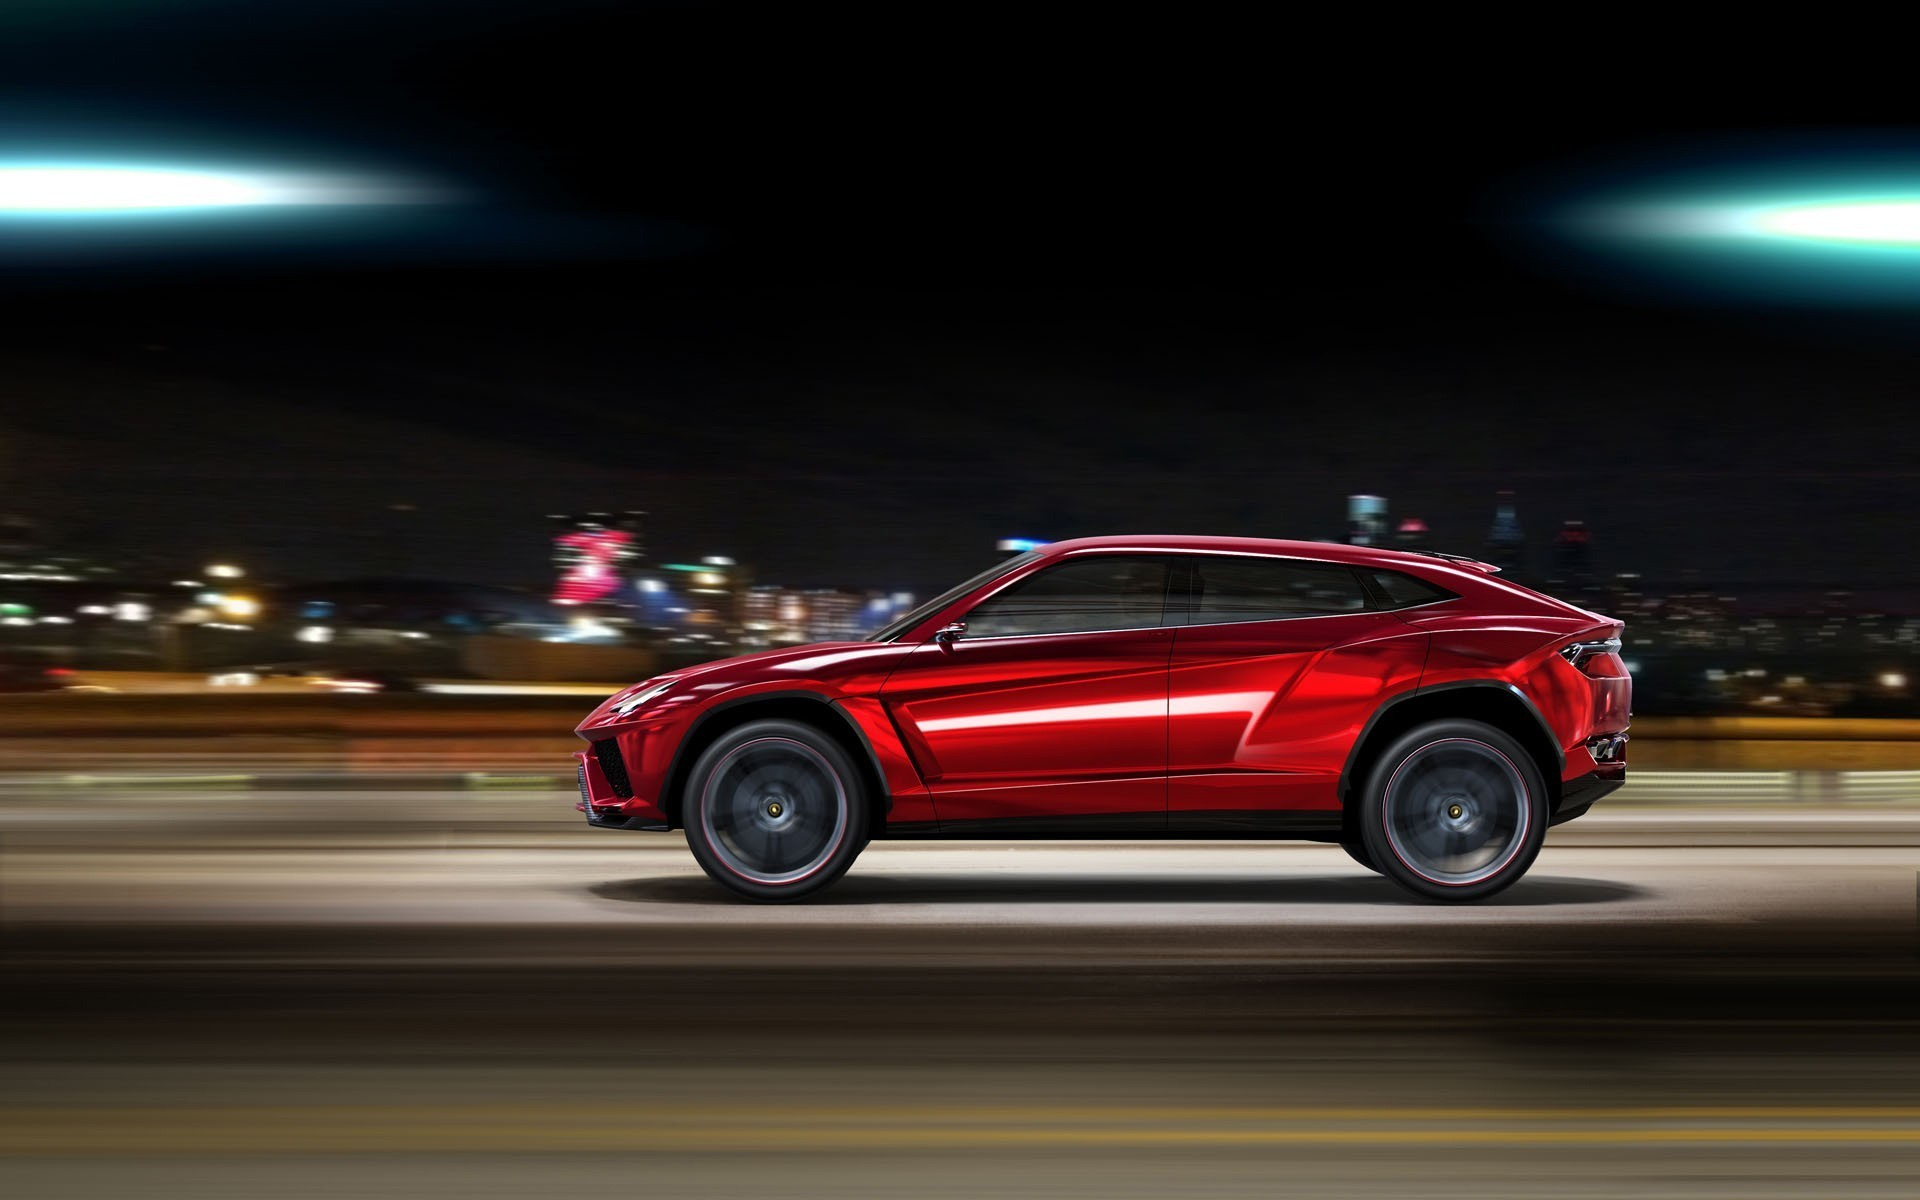 lamborghini urus suv cars concept wallpaper | allwallpaper.in #4054